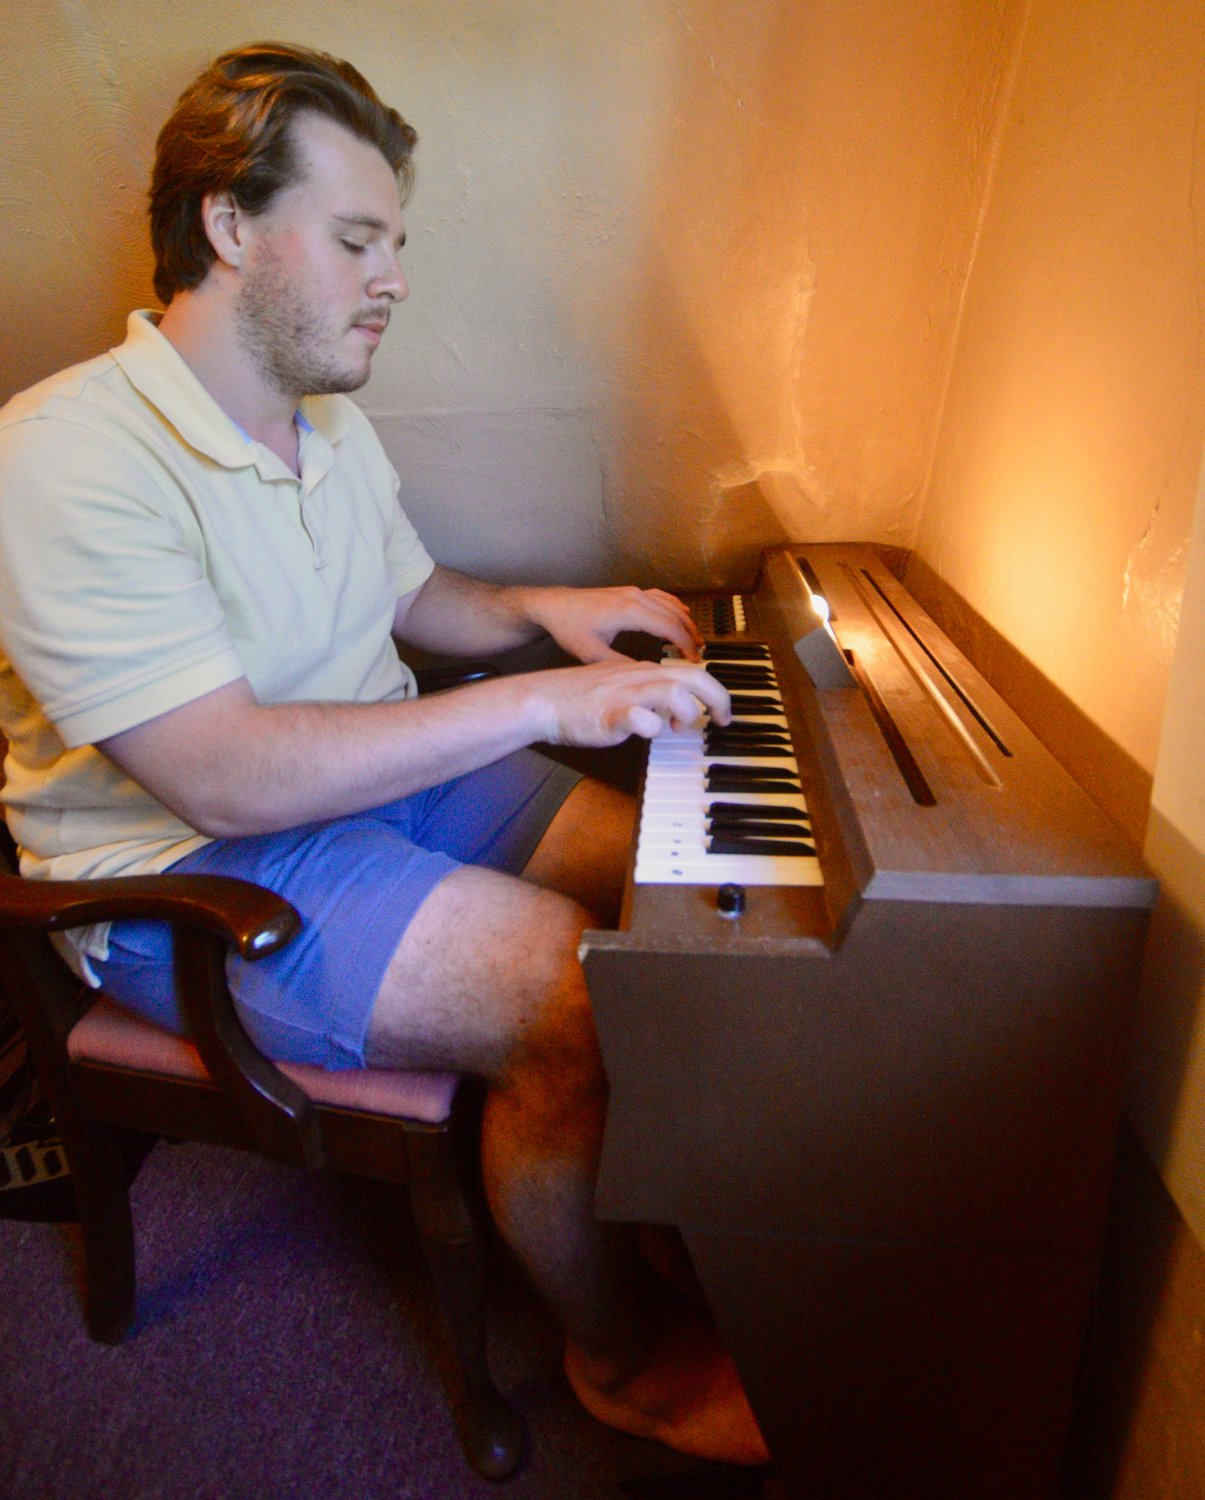 Nicholas Quigley, who teaches music to grades 5-8 at Atlantis Charter School in Fall River, plays a vintage chord organ at his Bristol Ferry Road apartment last week. The instrument, a smaller version of a regular organ, was popular in the '60s and '70s.